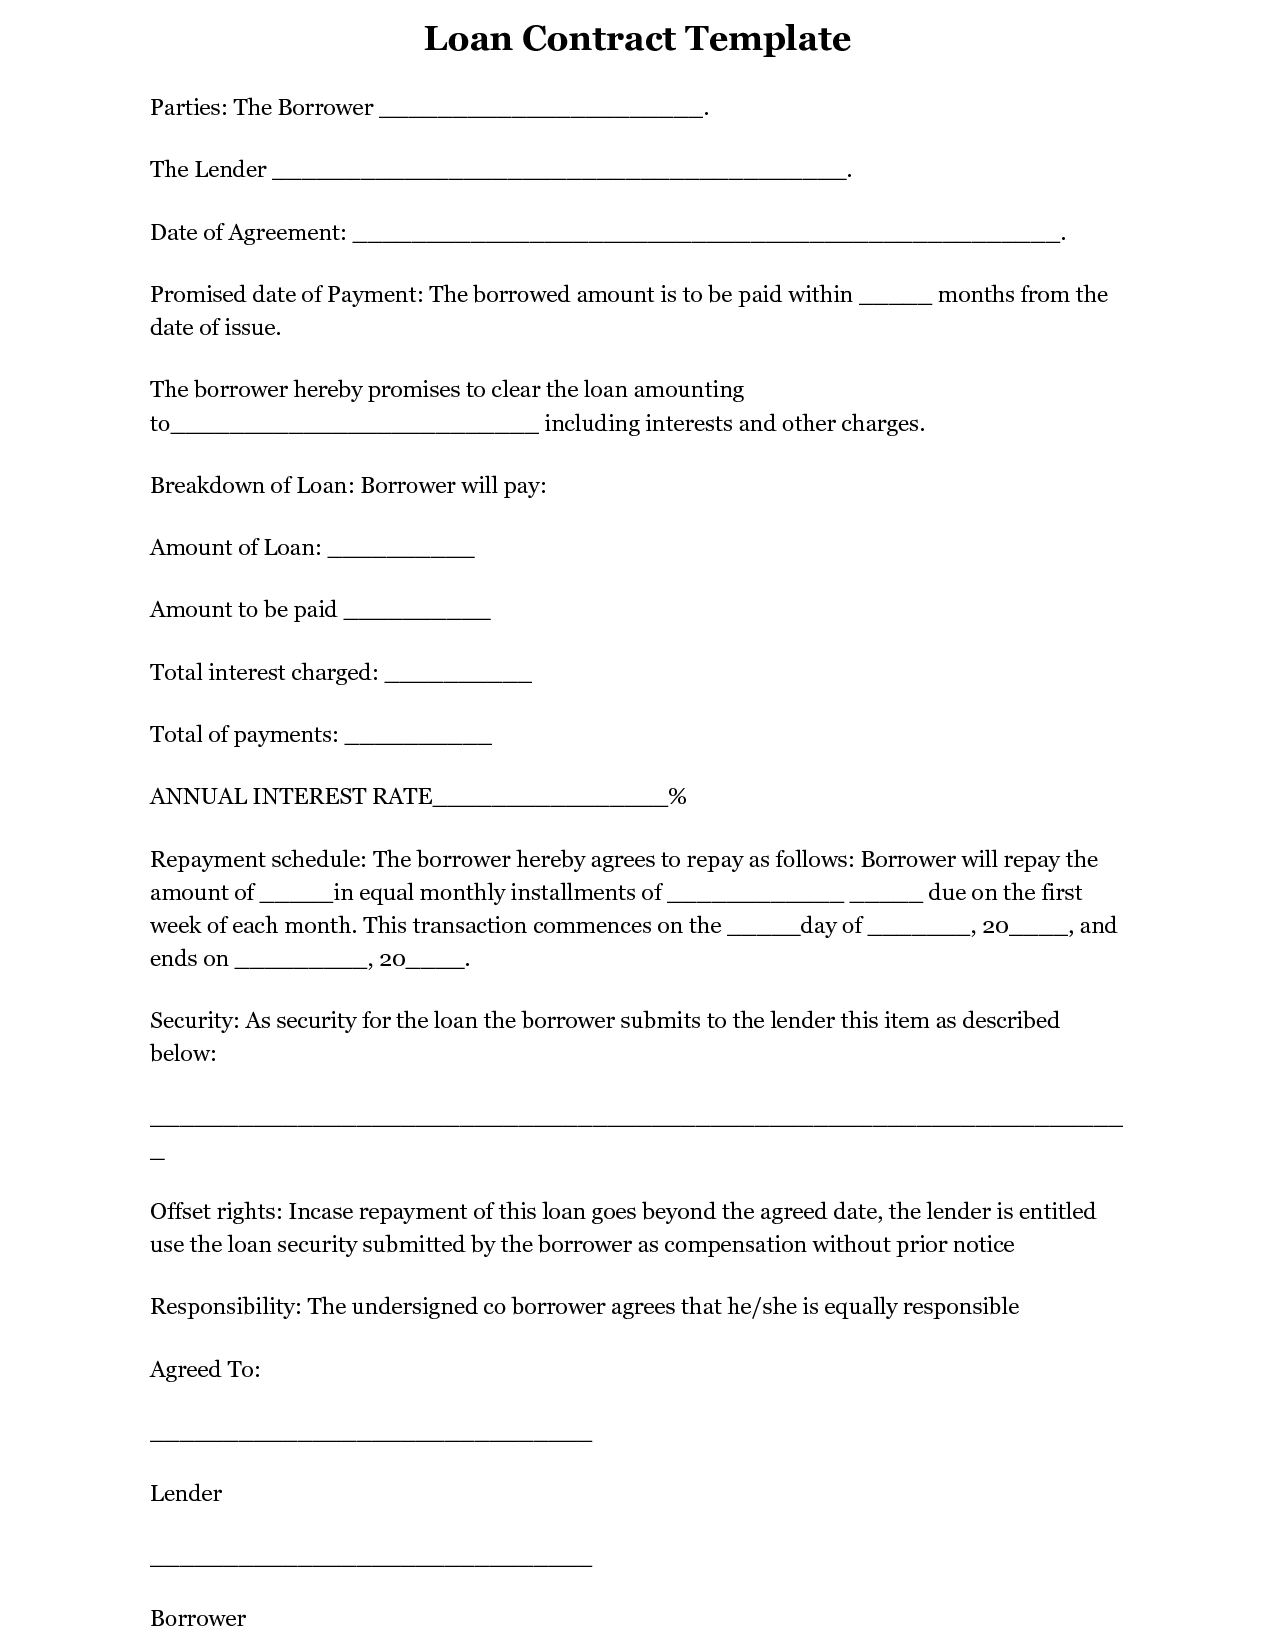 Beautiful Simple Loan Agreement Form Free Loan Contract Template 26 Examples In Word  Pdf Free, Commercial Loan Agreement Template Loan Agreement Form Template,  ... For Private Loan Contract Template